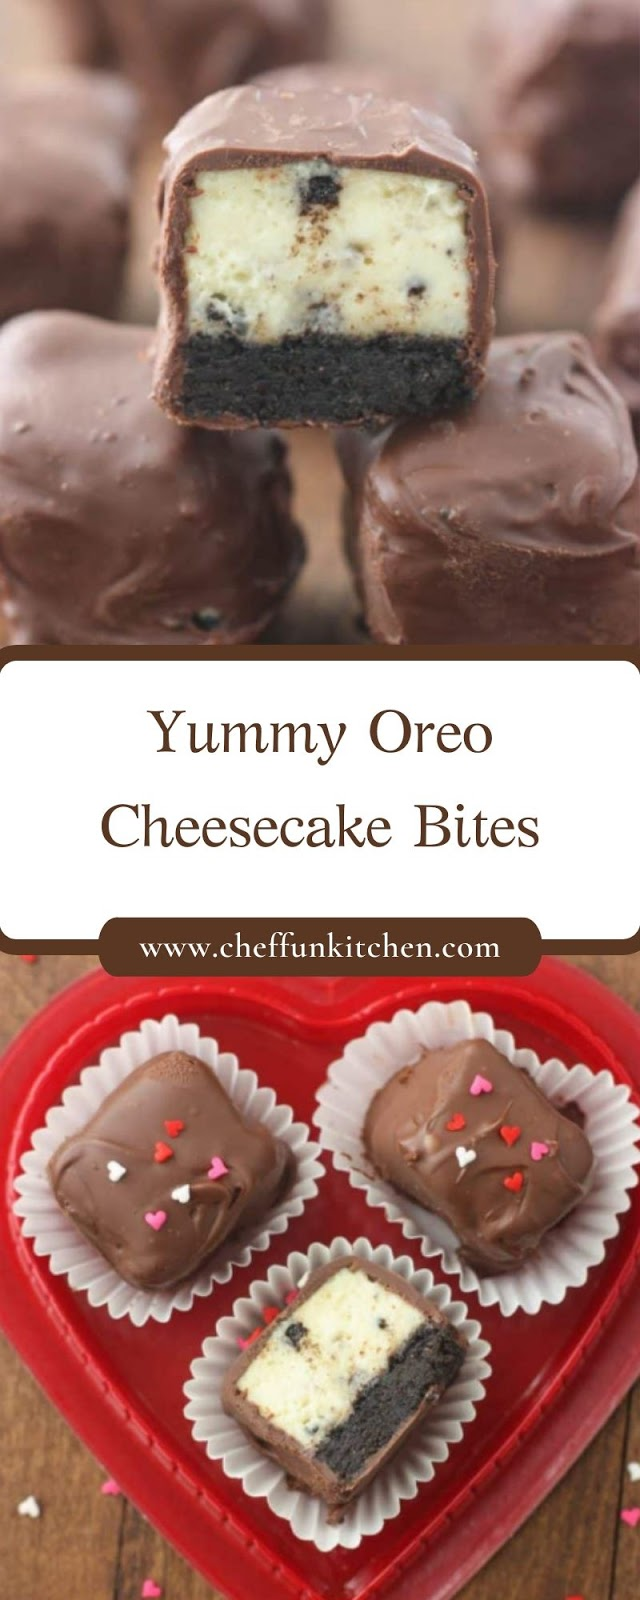 Yummy Oreo Cheesecake Bites